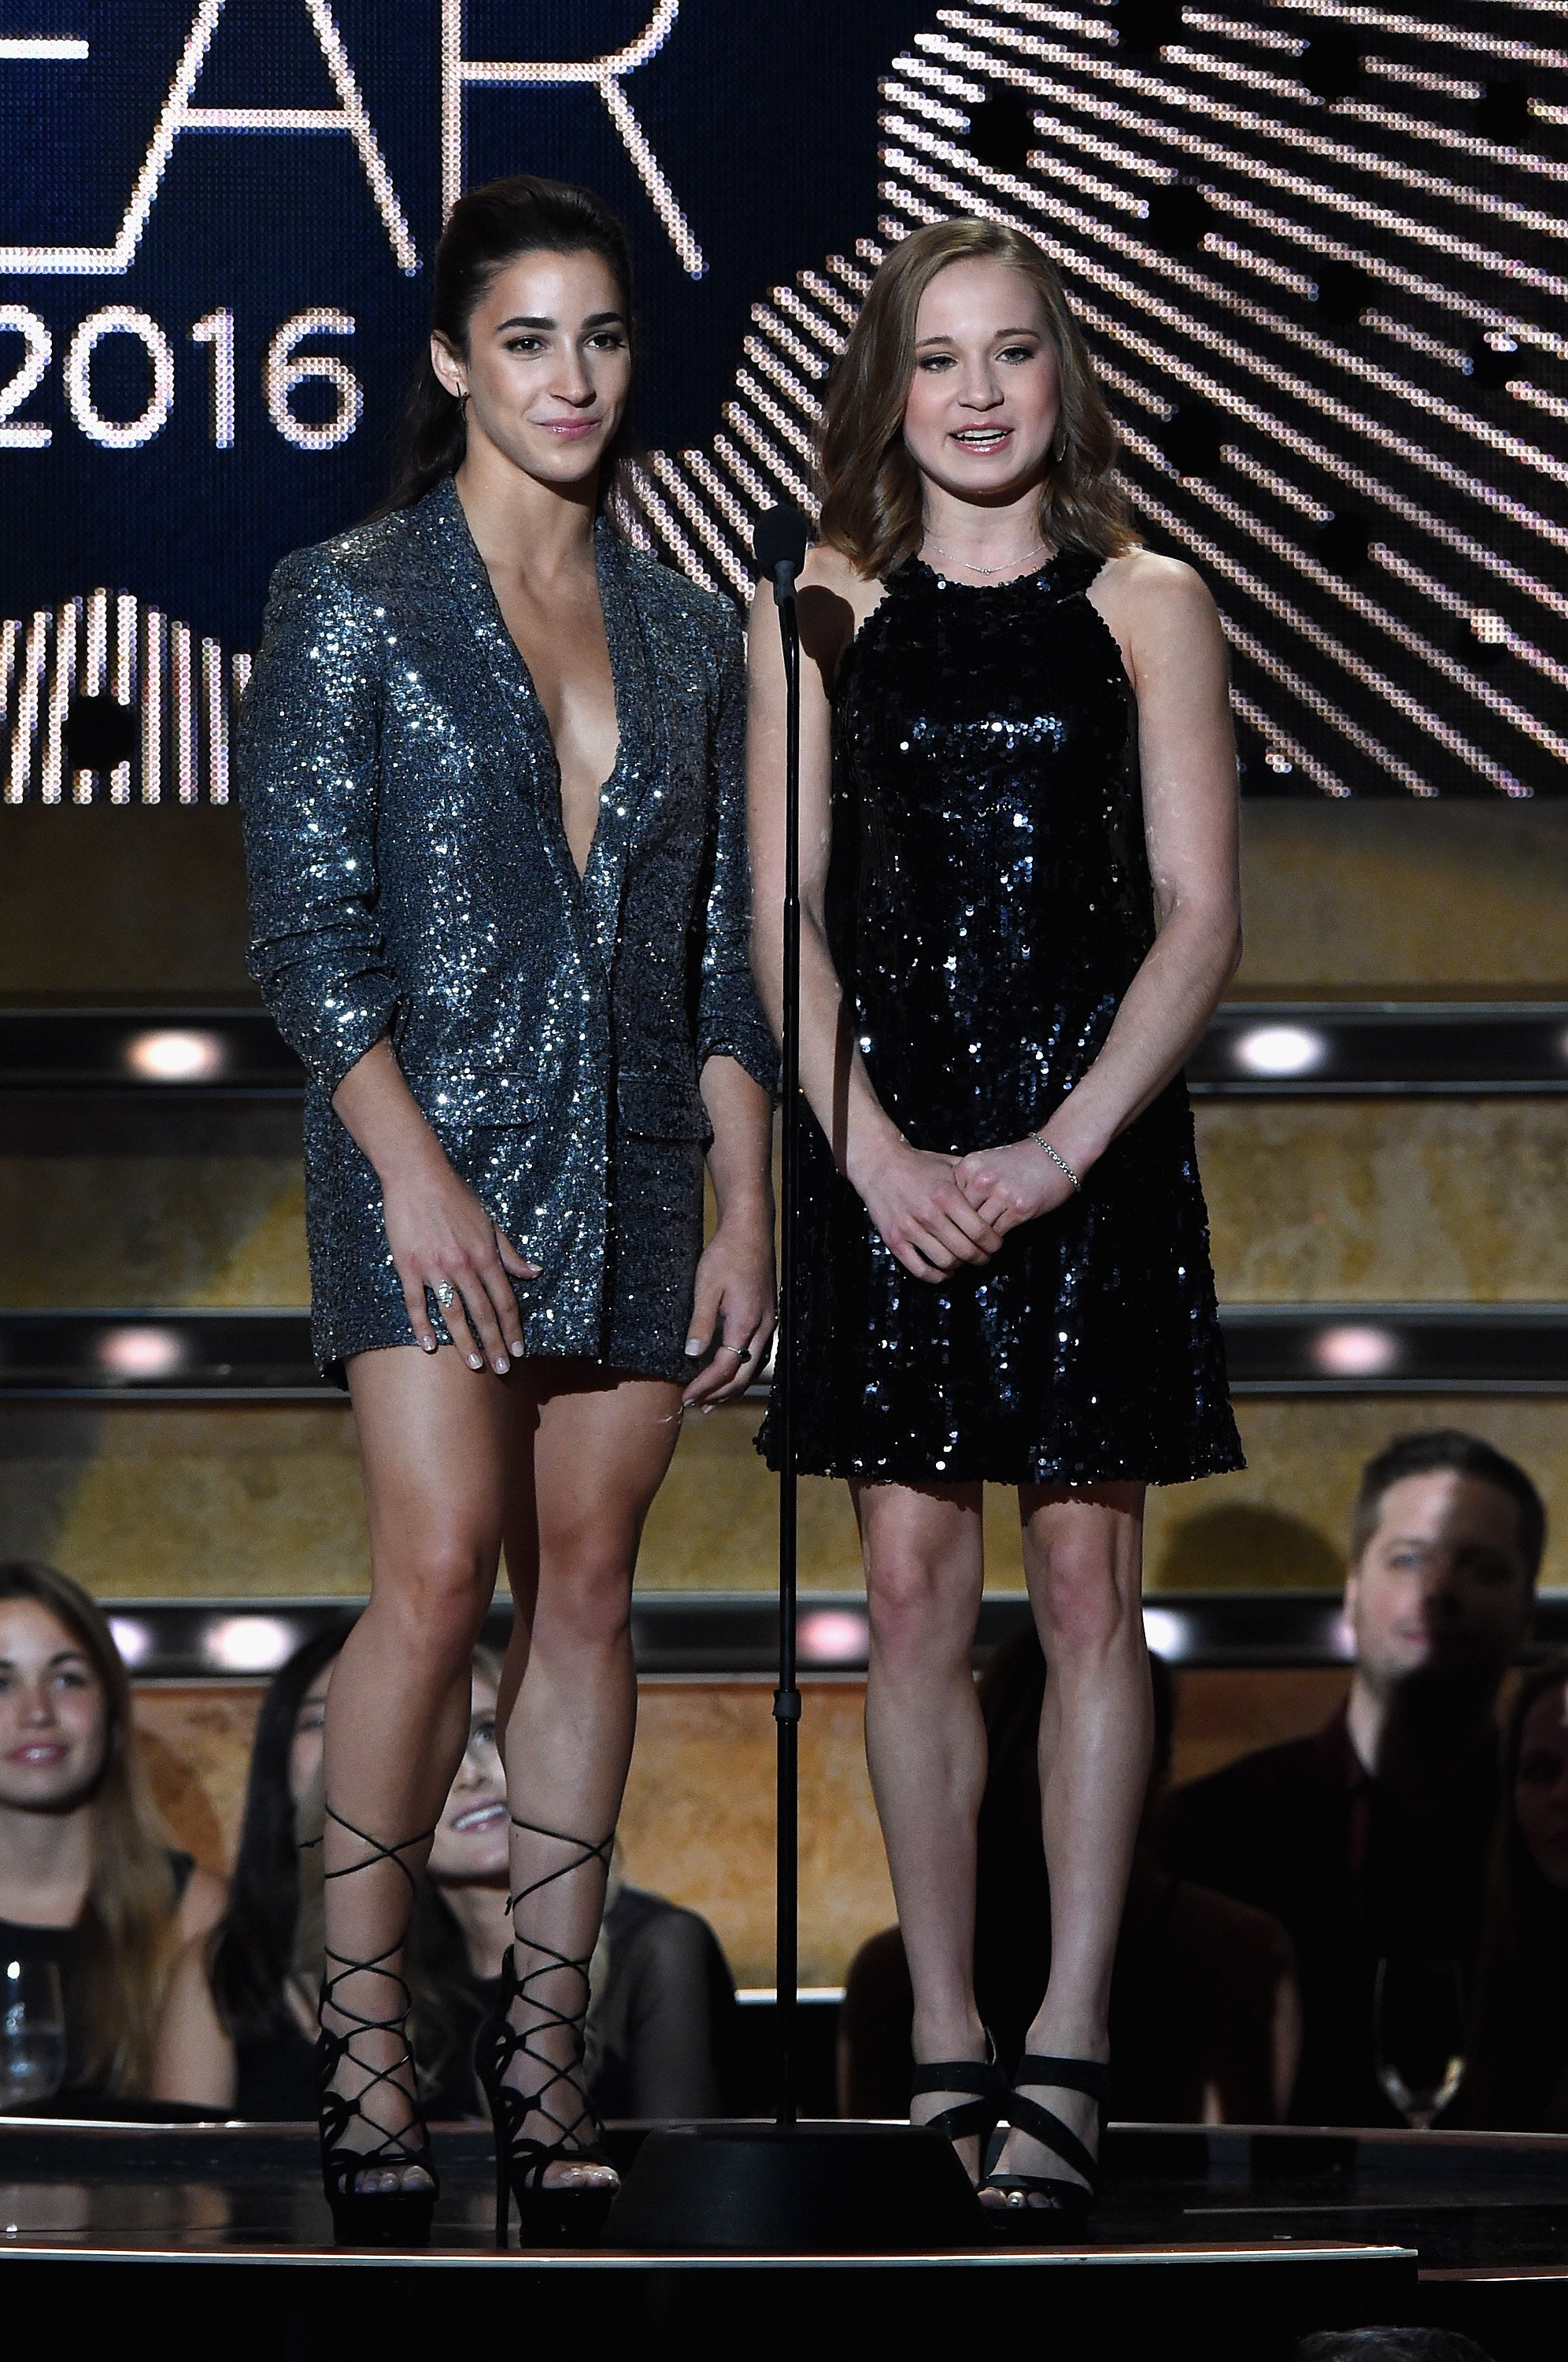 Aly Raisman and Madison Kocian present an award on stage at CMT Artists of the Year 2016 on October 19, 2016 in Nashville